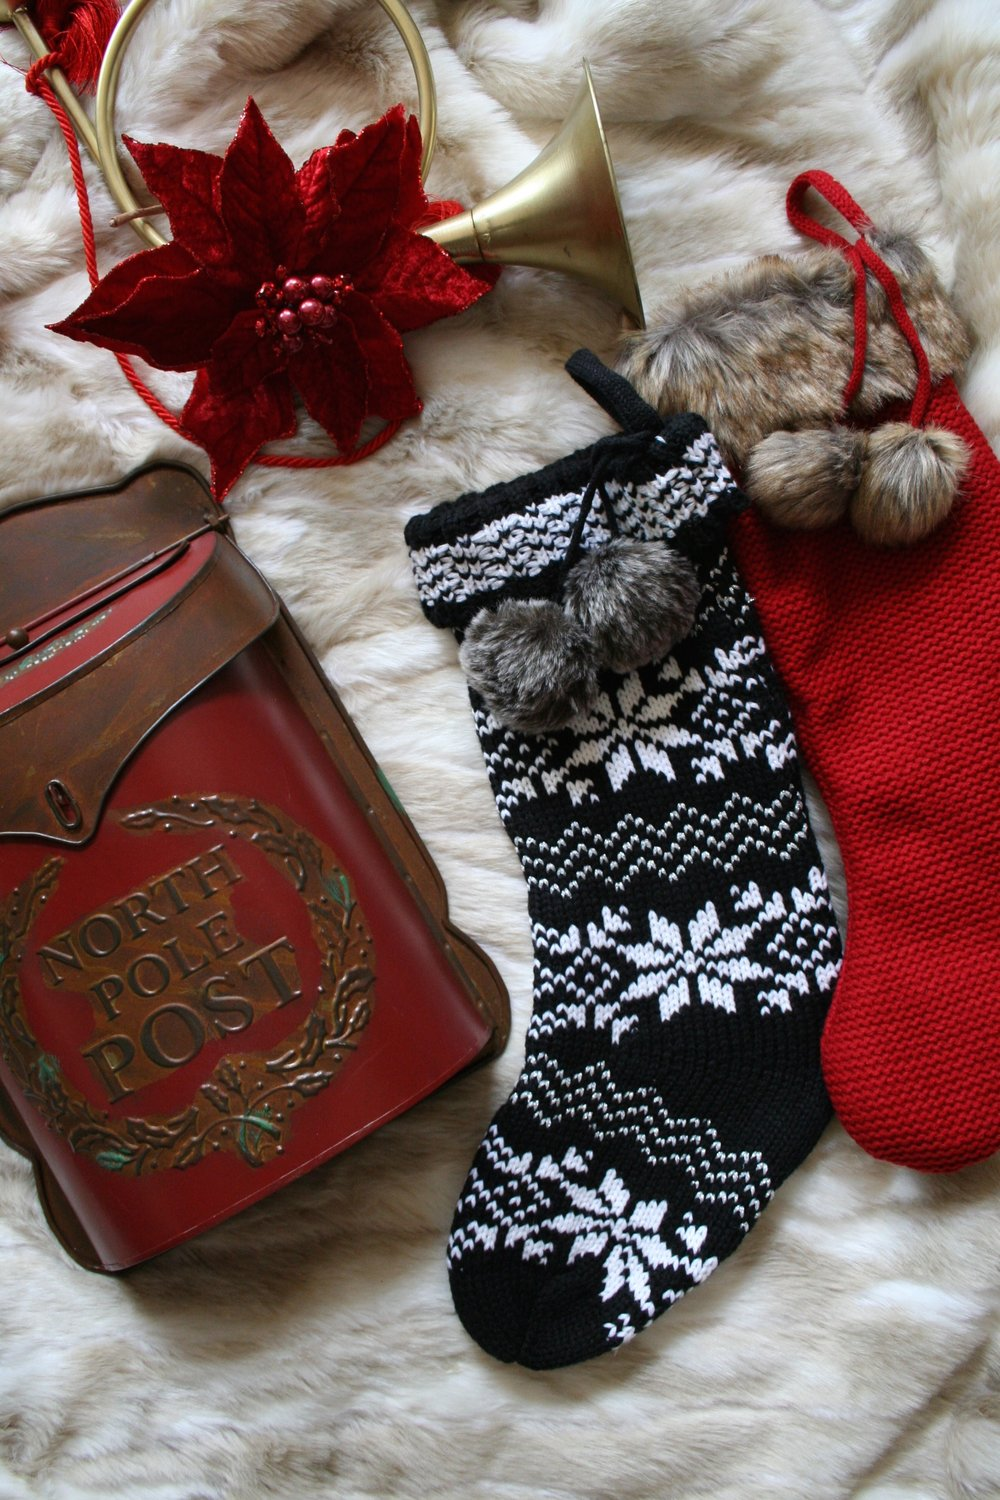 Christmas Stockings and Santa Post Box